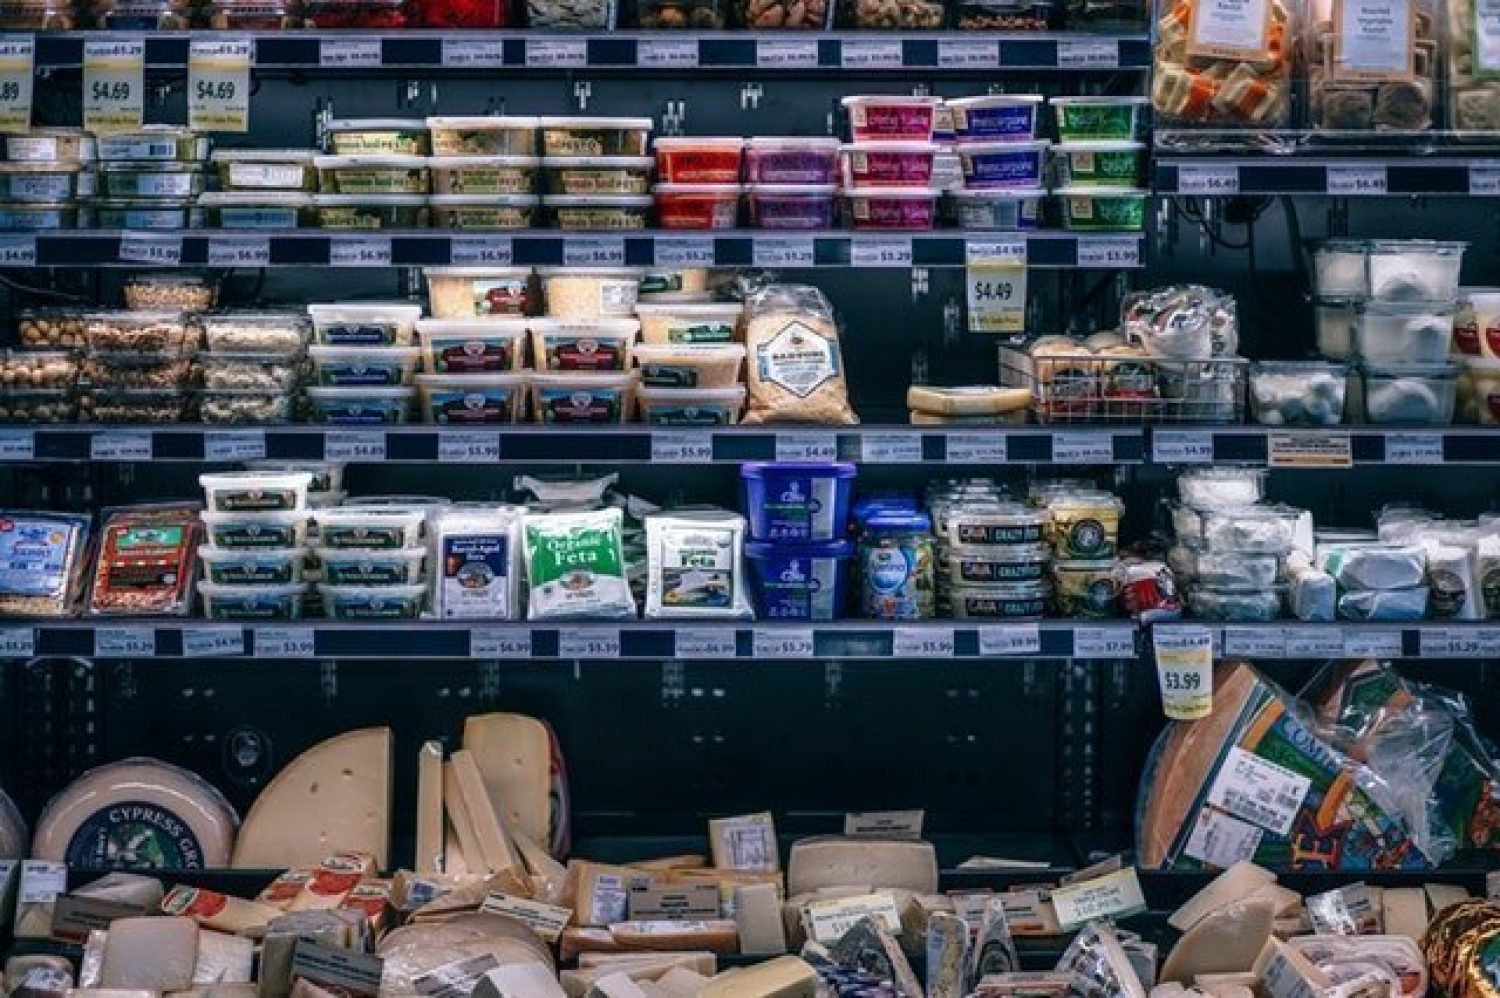 Assorted cheeses and meats on refrigerated shelves in the grocery store